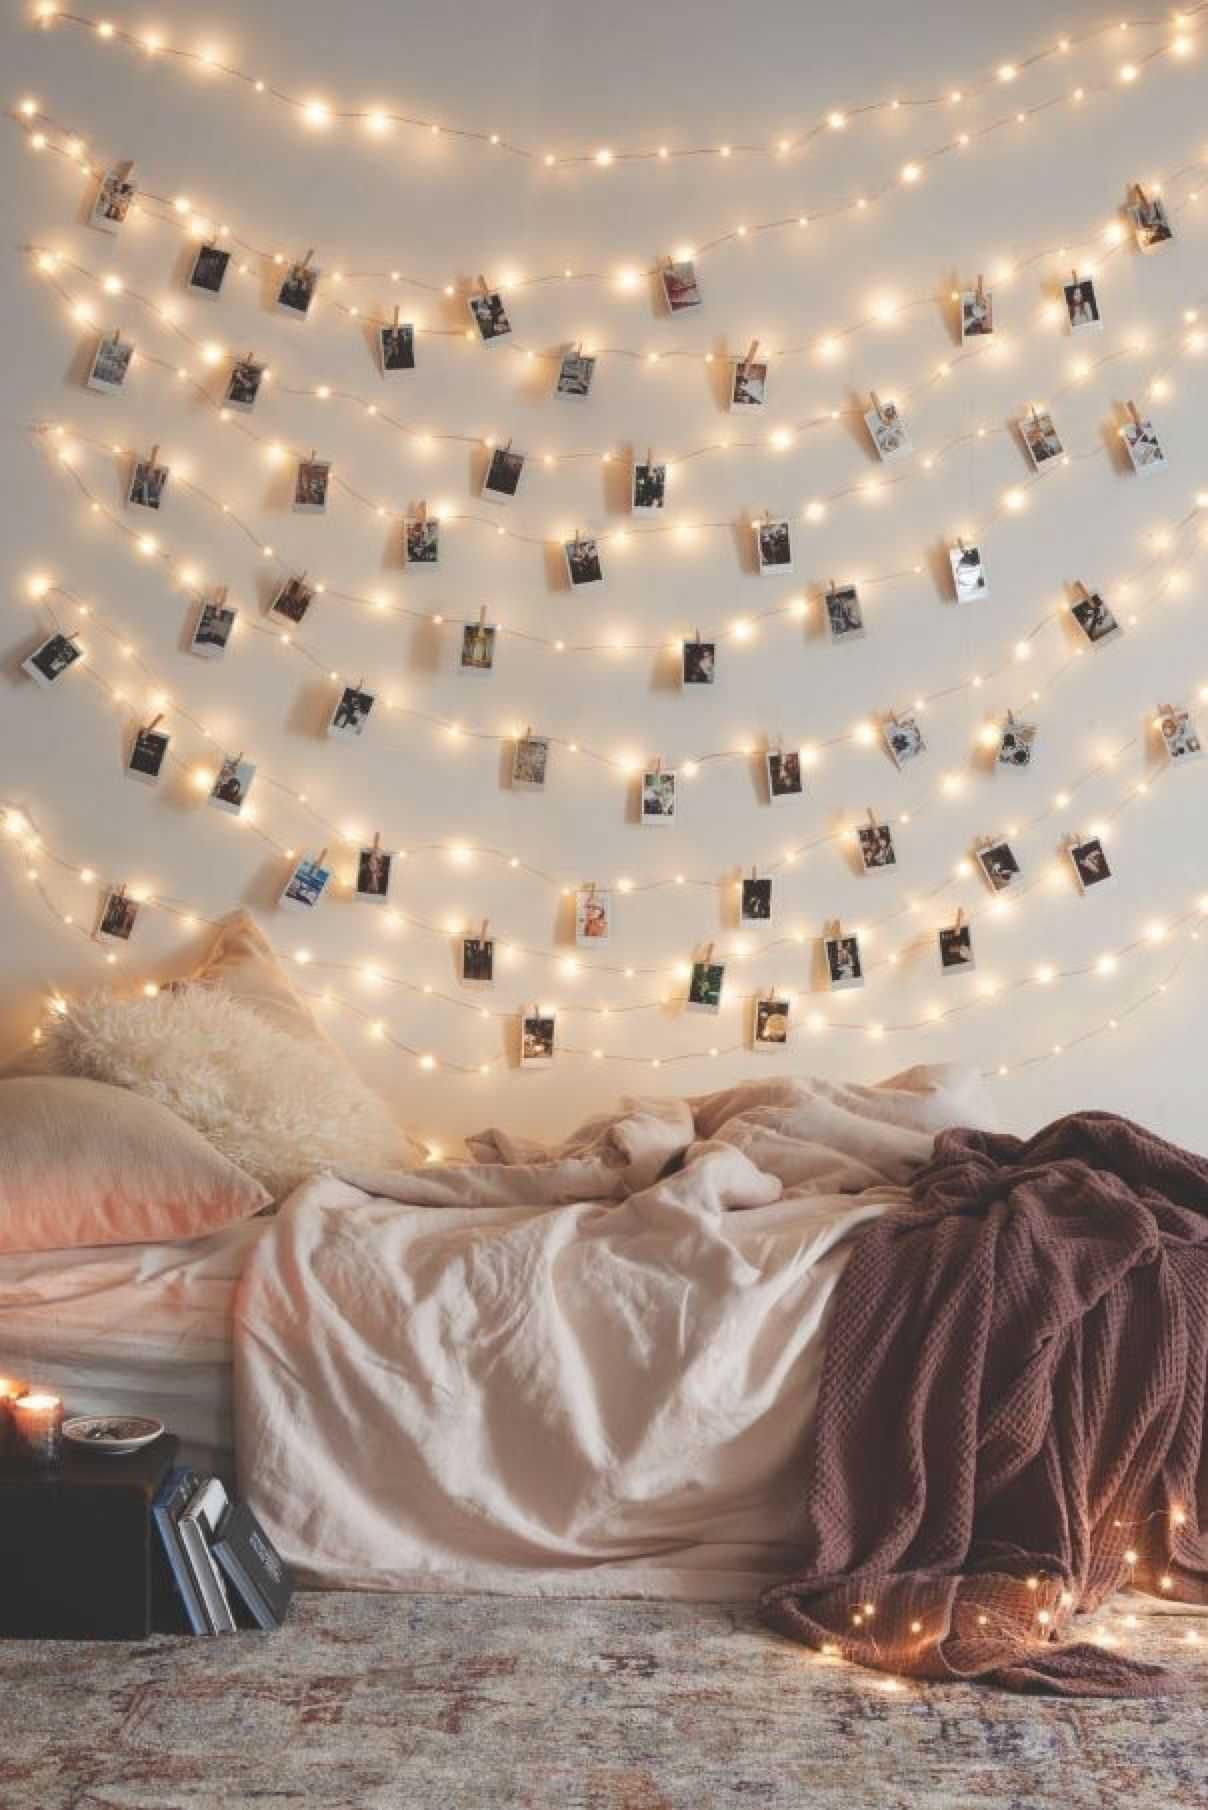 Grey And White Room Ideas Tumblr Fresh Grey And White Room Ideas Tumblr Indoor Fairy Lights For Bedroom Styl Room Inspiration New Room Bedroom Inspirations